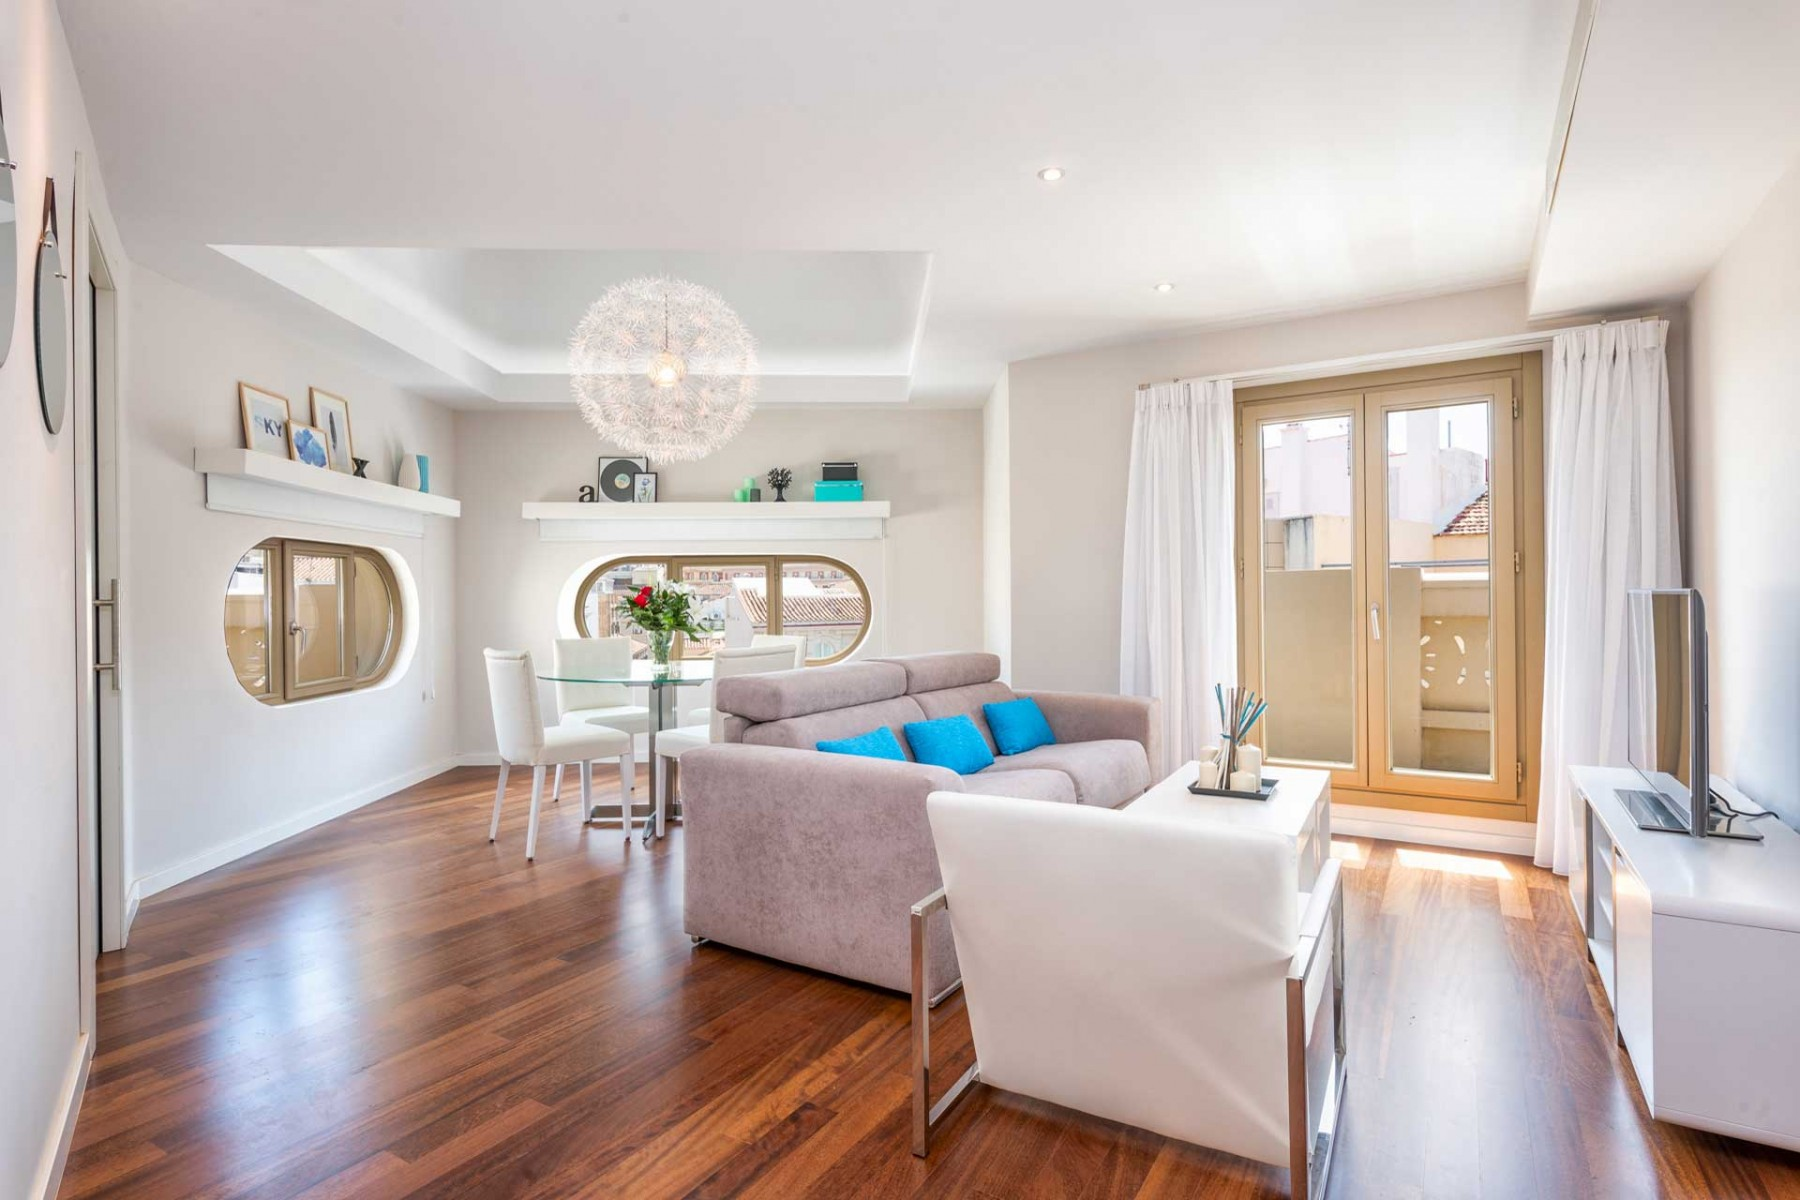 Luxury penthouse flat in the heart of Malaga shopping district